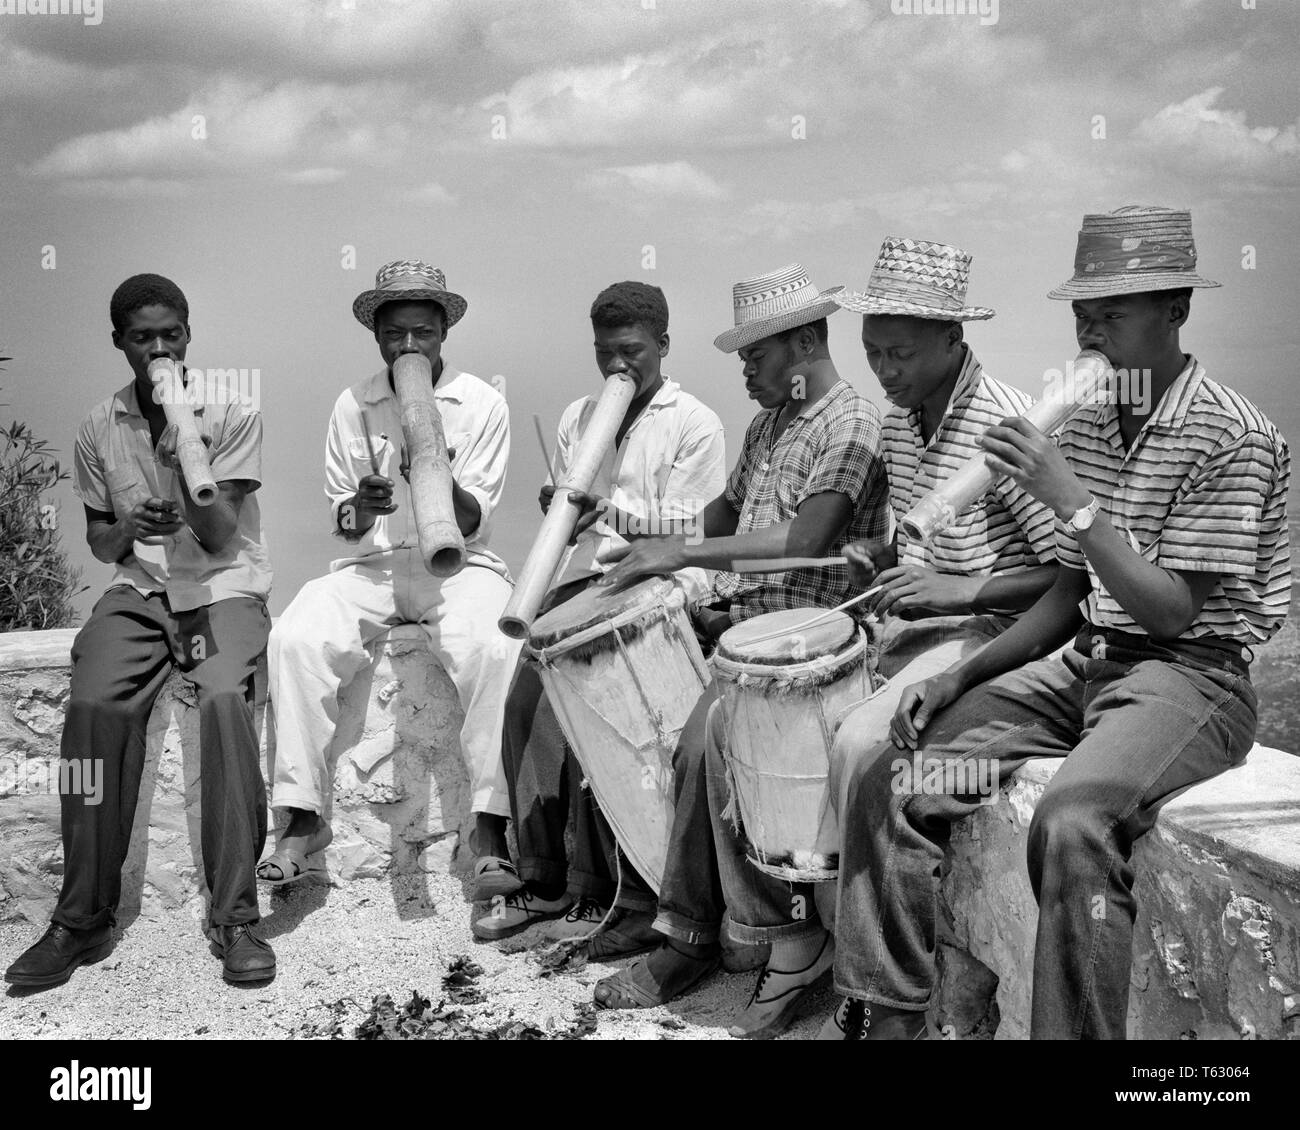 1960s BAND OF ANONYMOUS NATIVE HAITIAN MUSICIANS PLAYING HAND MADE INSTRUMENTS SITTING ON WALL OUTDOOR  - r17196 LAN001 HARS 6 COMMUNICATING DRUMS PERSONS MALES CARIBBEAN SIX PROFESSION ENTERTAINMENT B&W HORNS MUSICIANS SKILL MINORITY OCCUPATION SKILLS PERCUSSION INSTRUMENT MANUAL PERFORMER PERCUSSION CAREERS ETHNIC DIVERSITY OF ON ENTERTAINER OCCUPATIONS MUSICAL INSTRUMENT ORCHESTRAS BLACKS MUSICAL INSTRUMENTS PERCUSSION INSTRUMENTS ANONYMOUS MUSICAL EQUIPMENT COMMUNICATE ENTERTAINERS HAITIAN MINORITIES PERFORMERS BLACK AND WHITE HISPANIOLA OLD FASHIONED WIND INSTRUMENT WIND INSTRUMENTS - Stock Image